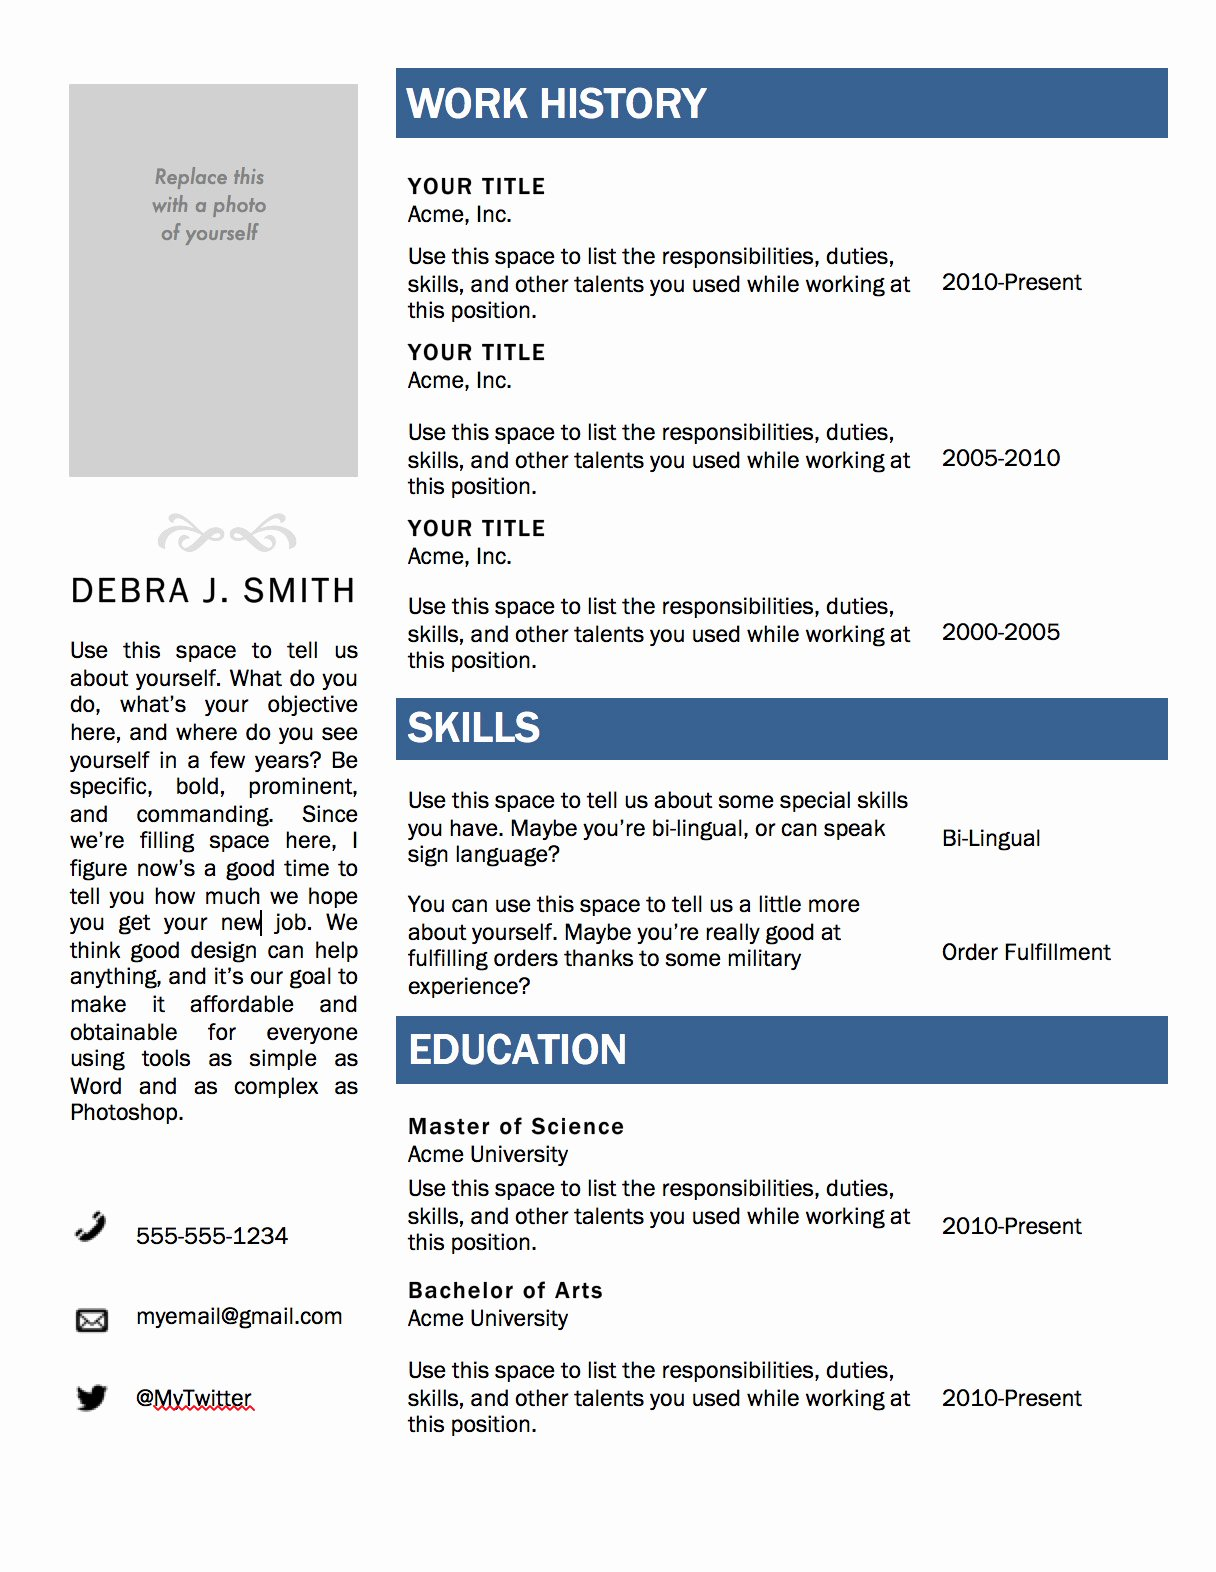 Free Microsoft Word Templates Unique Free Microsoft Word Resume Template — Superpixel